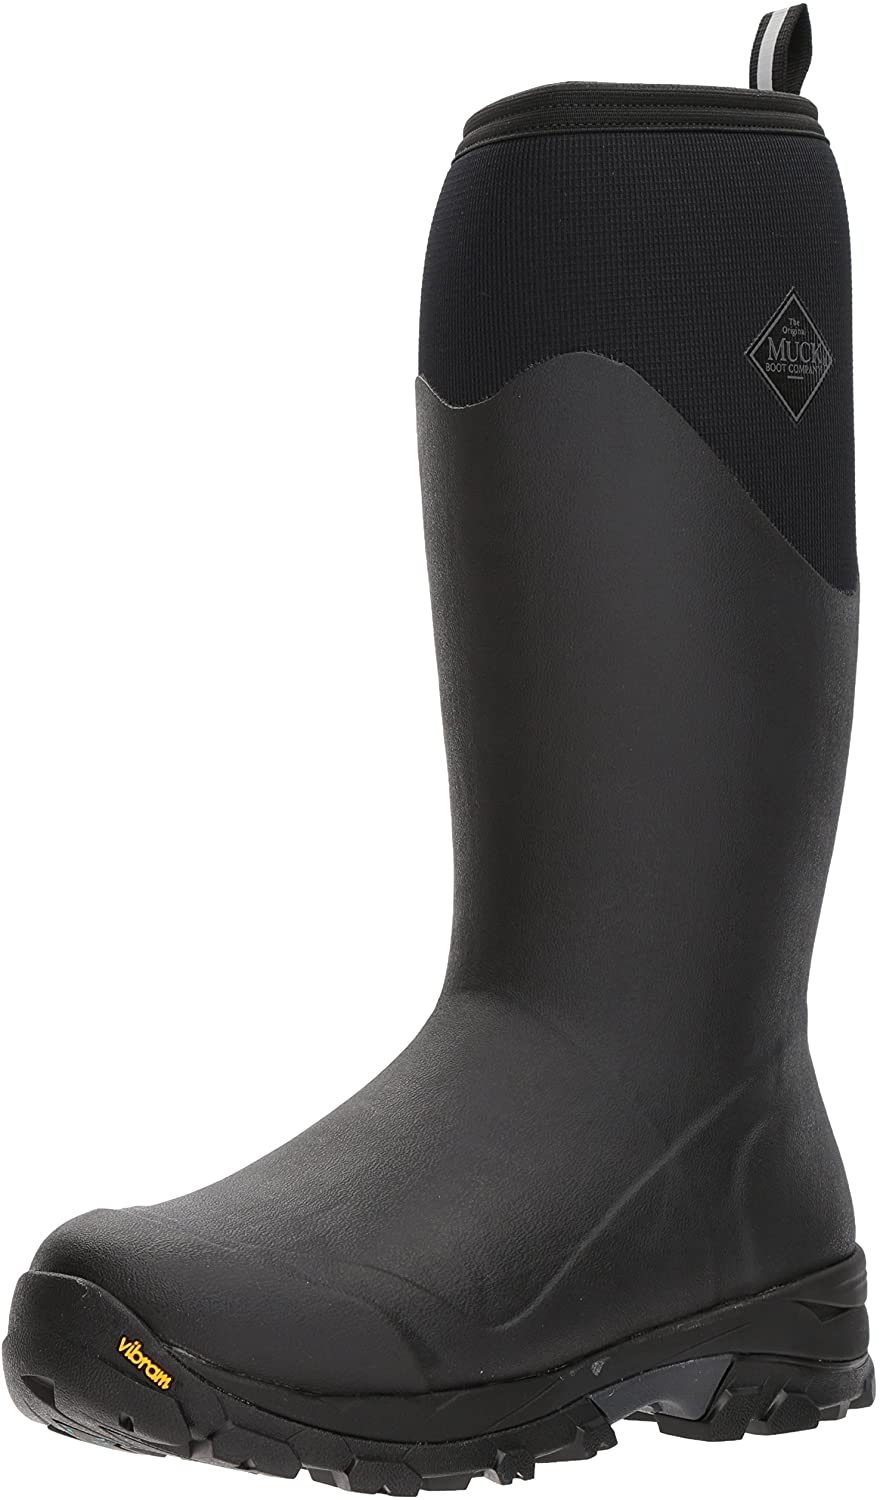 Muck Boots Arctic Ice Extreme Conditions Tall Rubber Mens Winter Boot With Arctic Grip Outsole